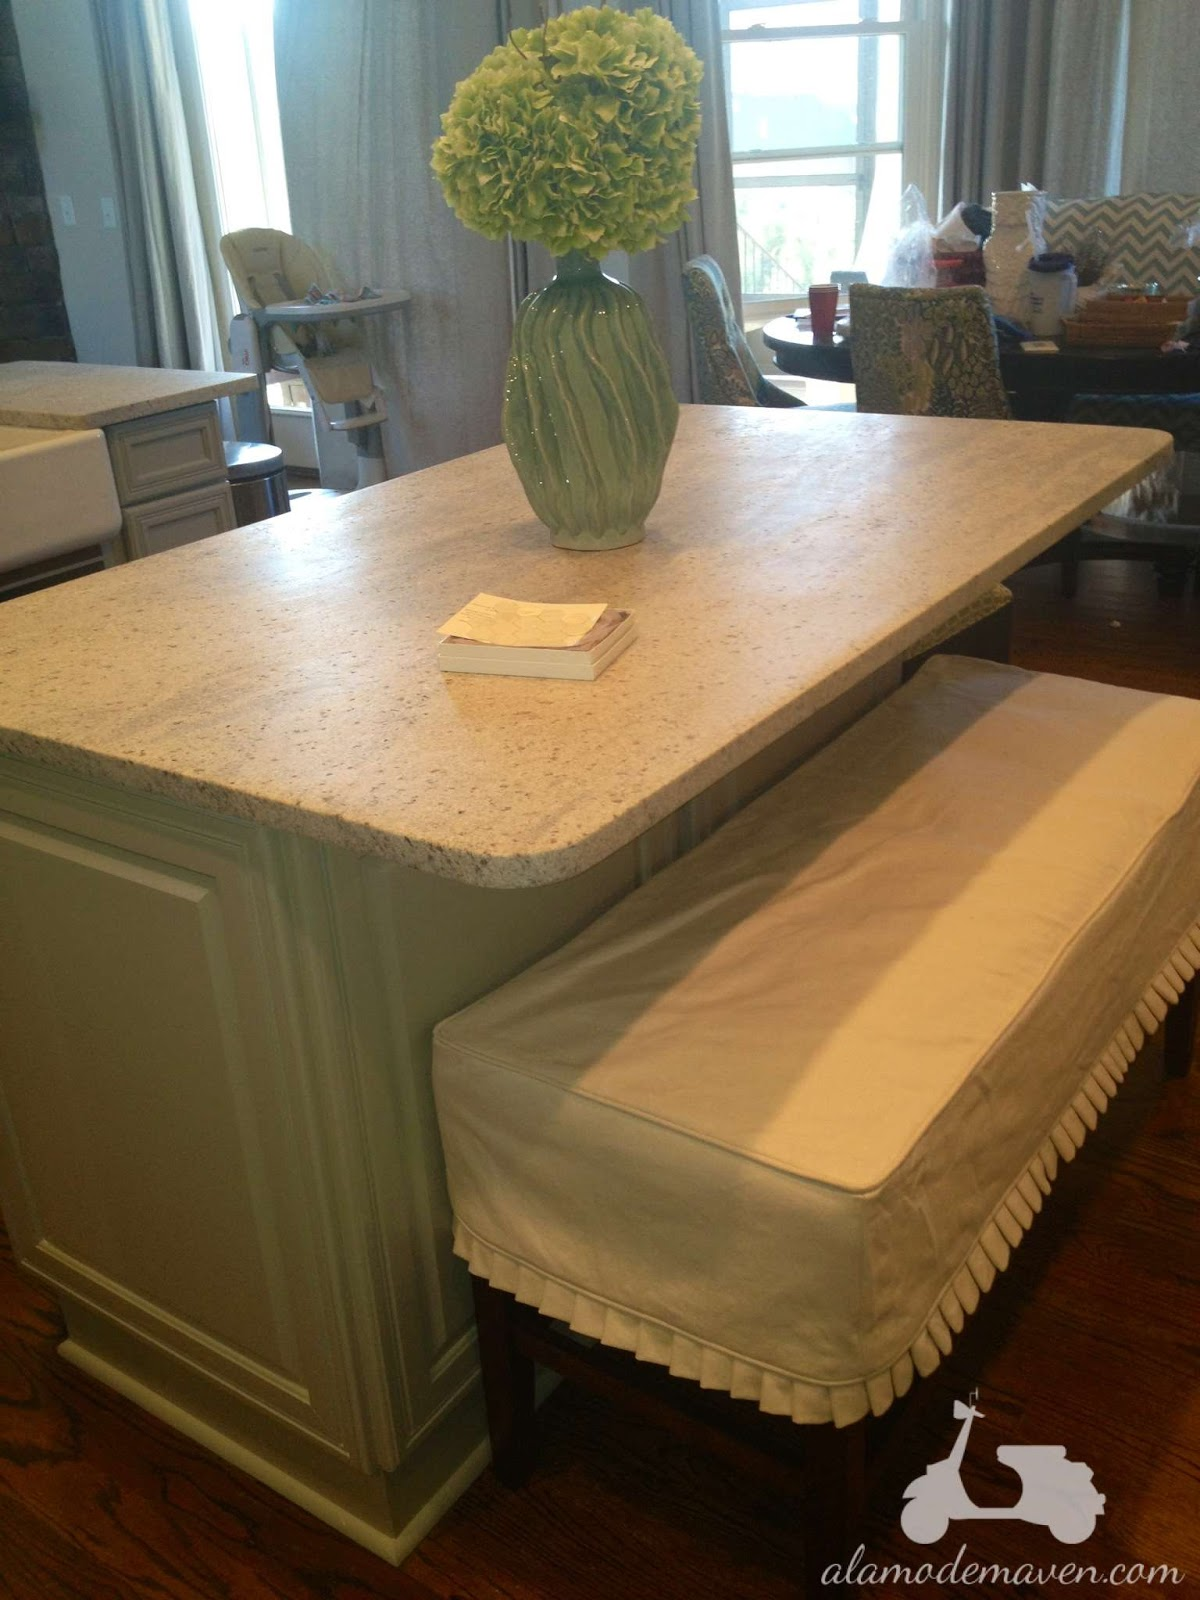 Kashmir White Granite Kitchen Alamode The Kashmir White Granite Is Installed